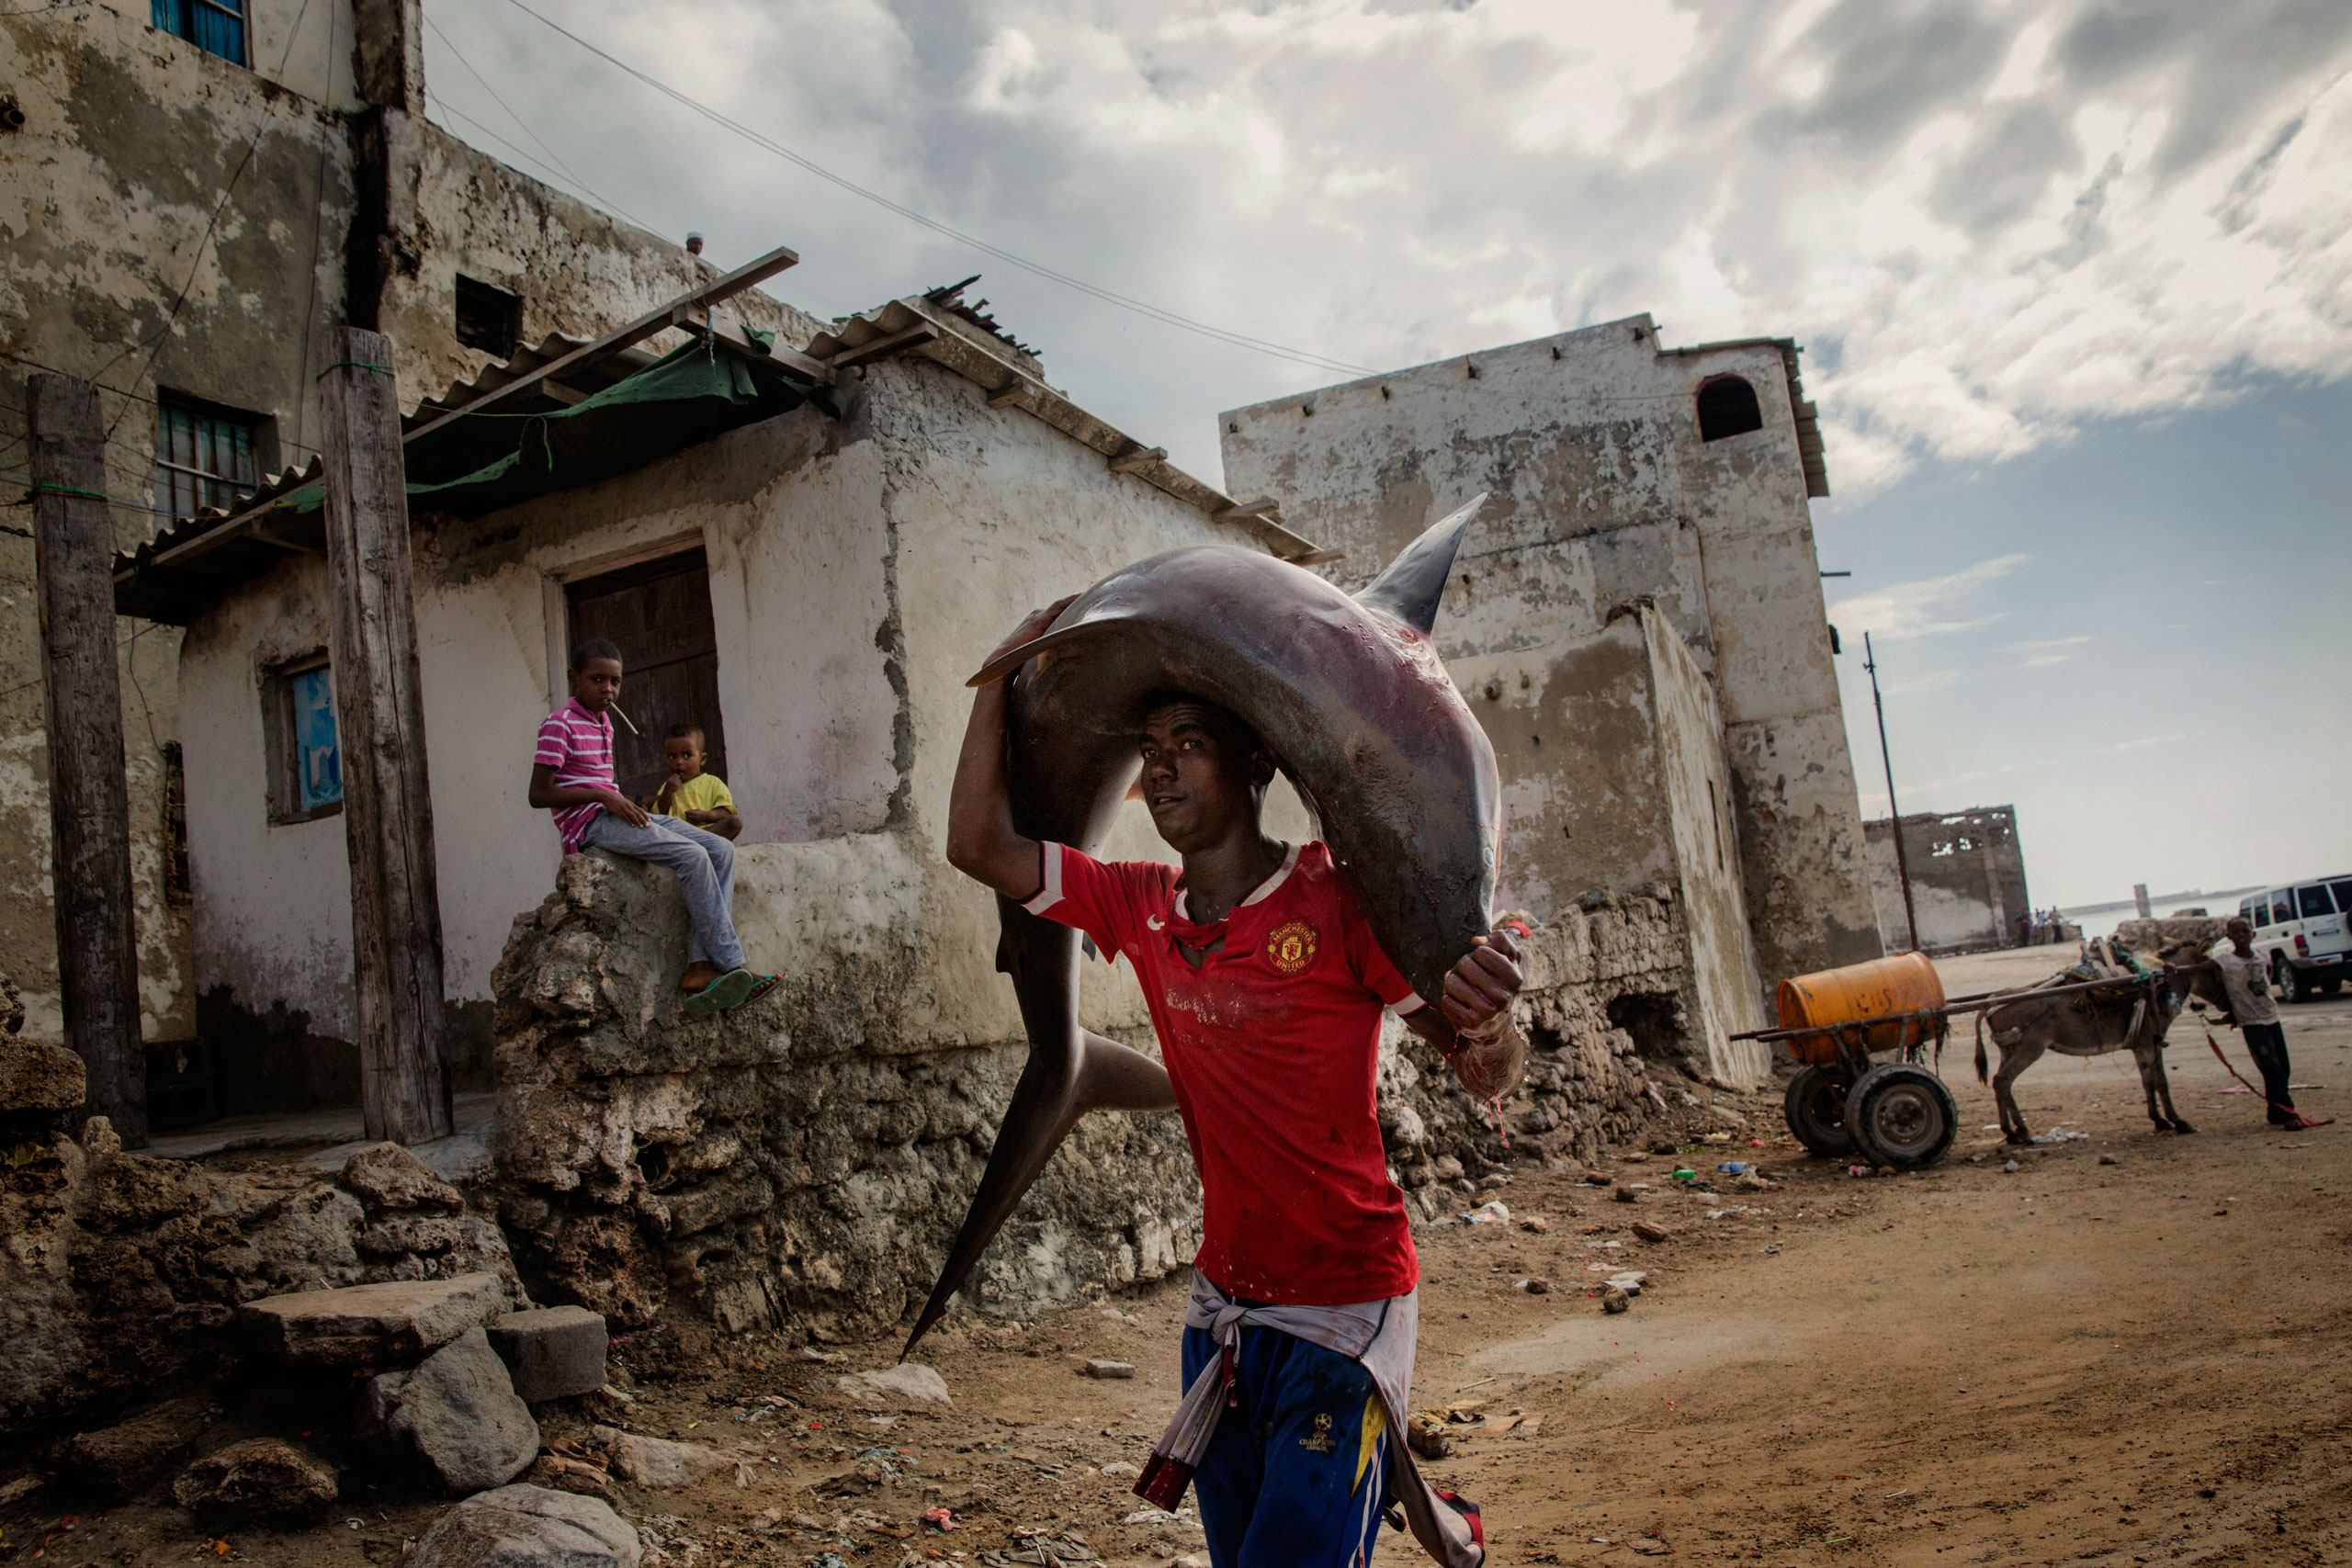 A man carries a shark on the streets of Mogadishu, Somalia.                                A recent escalation of plunders in Somali waters by foreign fishing vessels could mean the return of hijackings, locals fear. Mogadishu, Somalia. October 10, 2015.